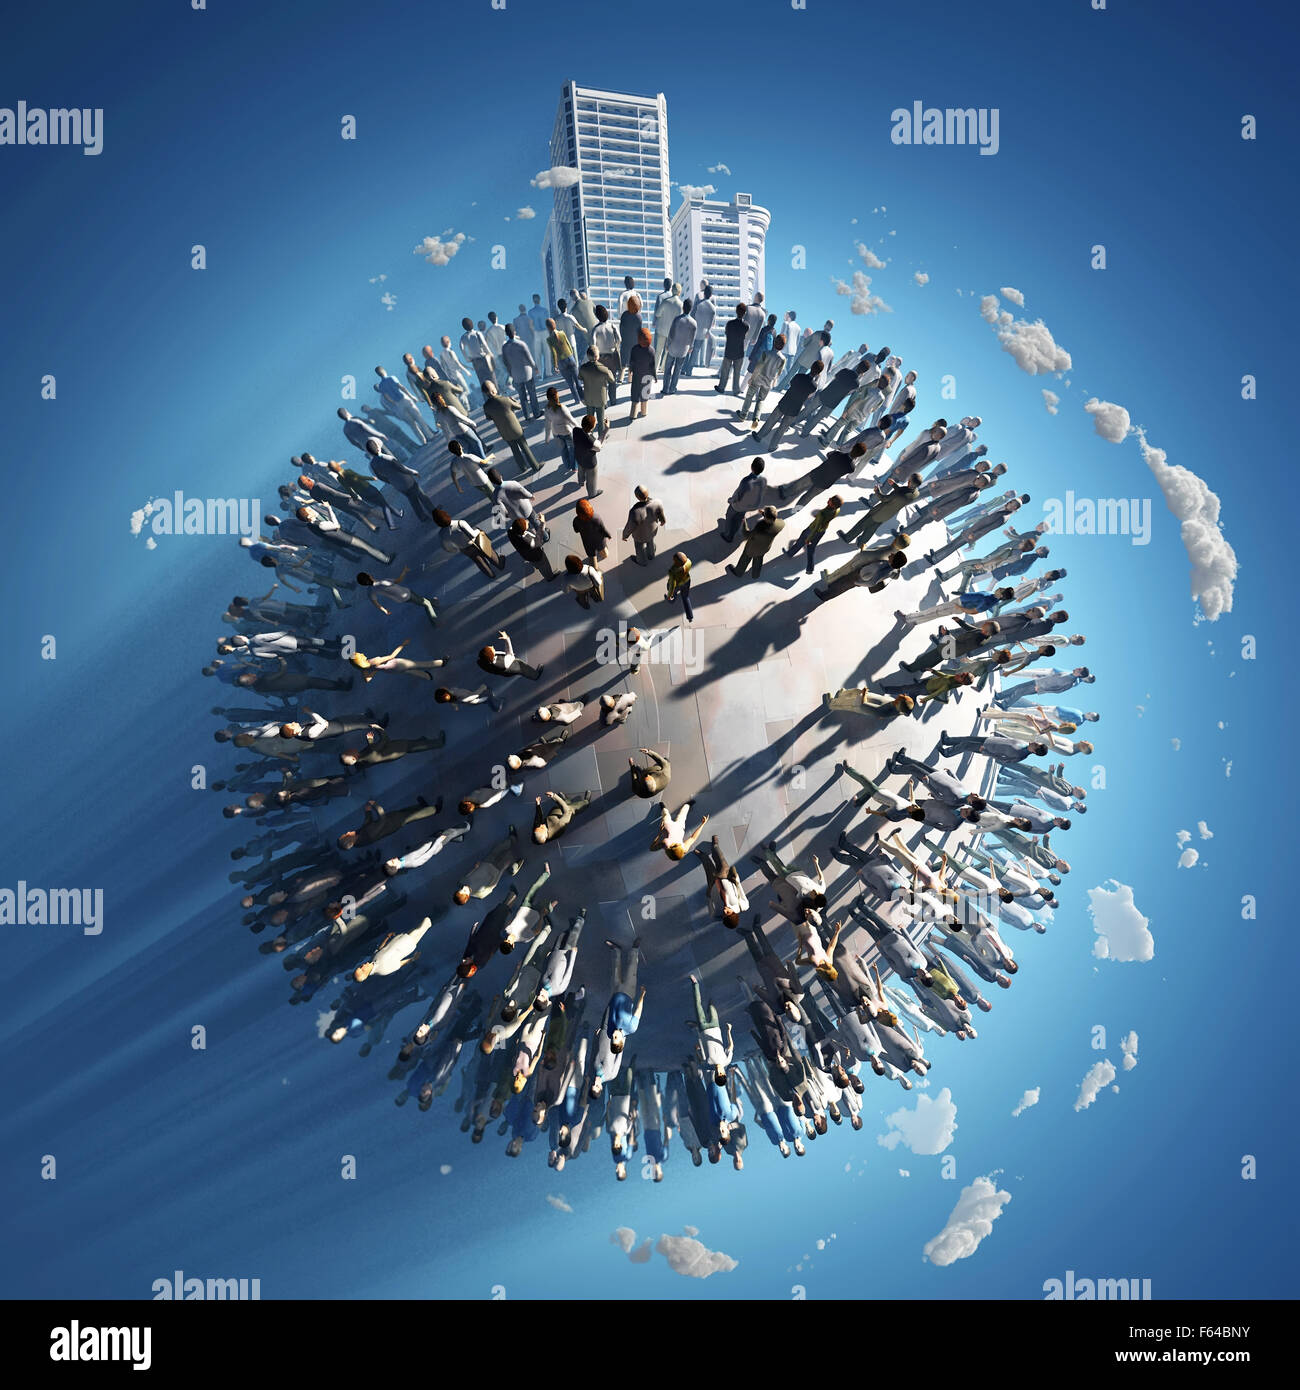 population of a small planet - Stock Image